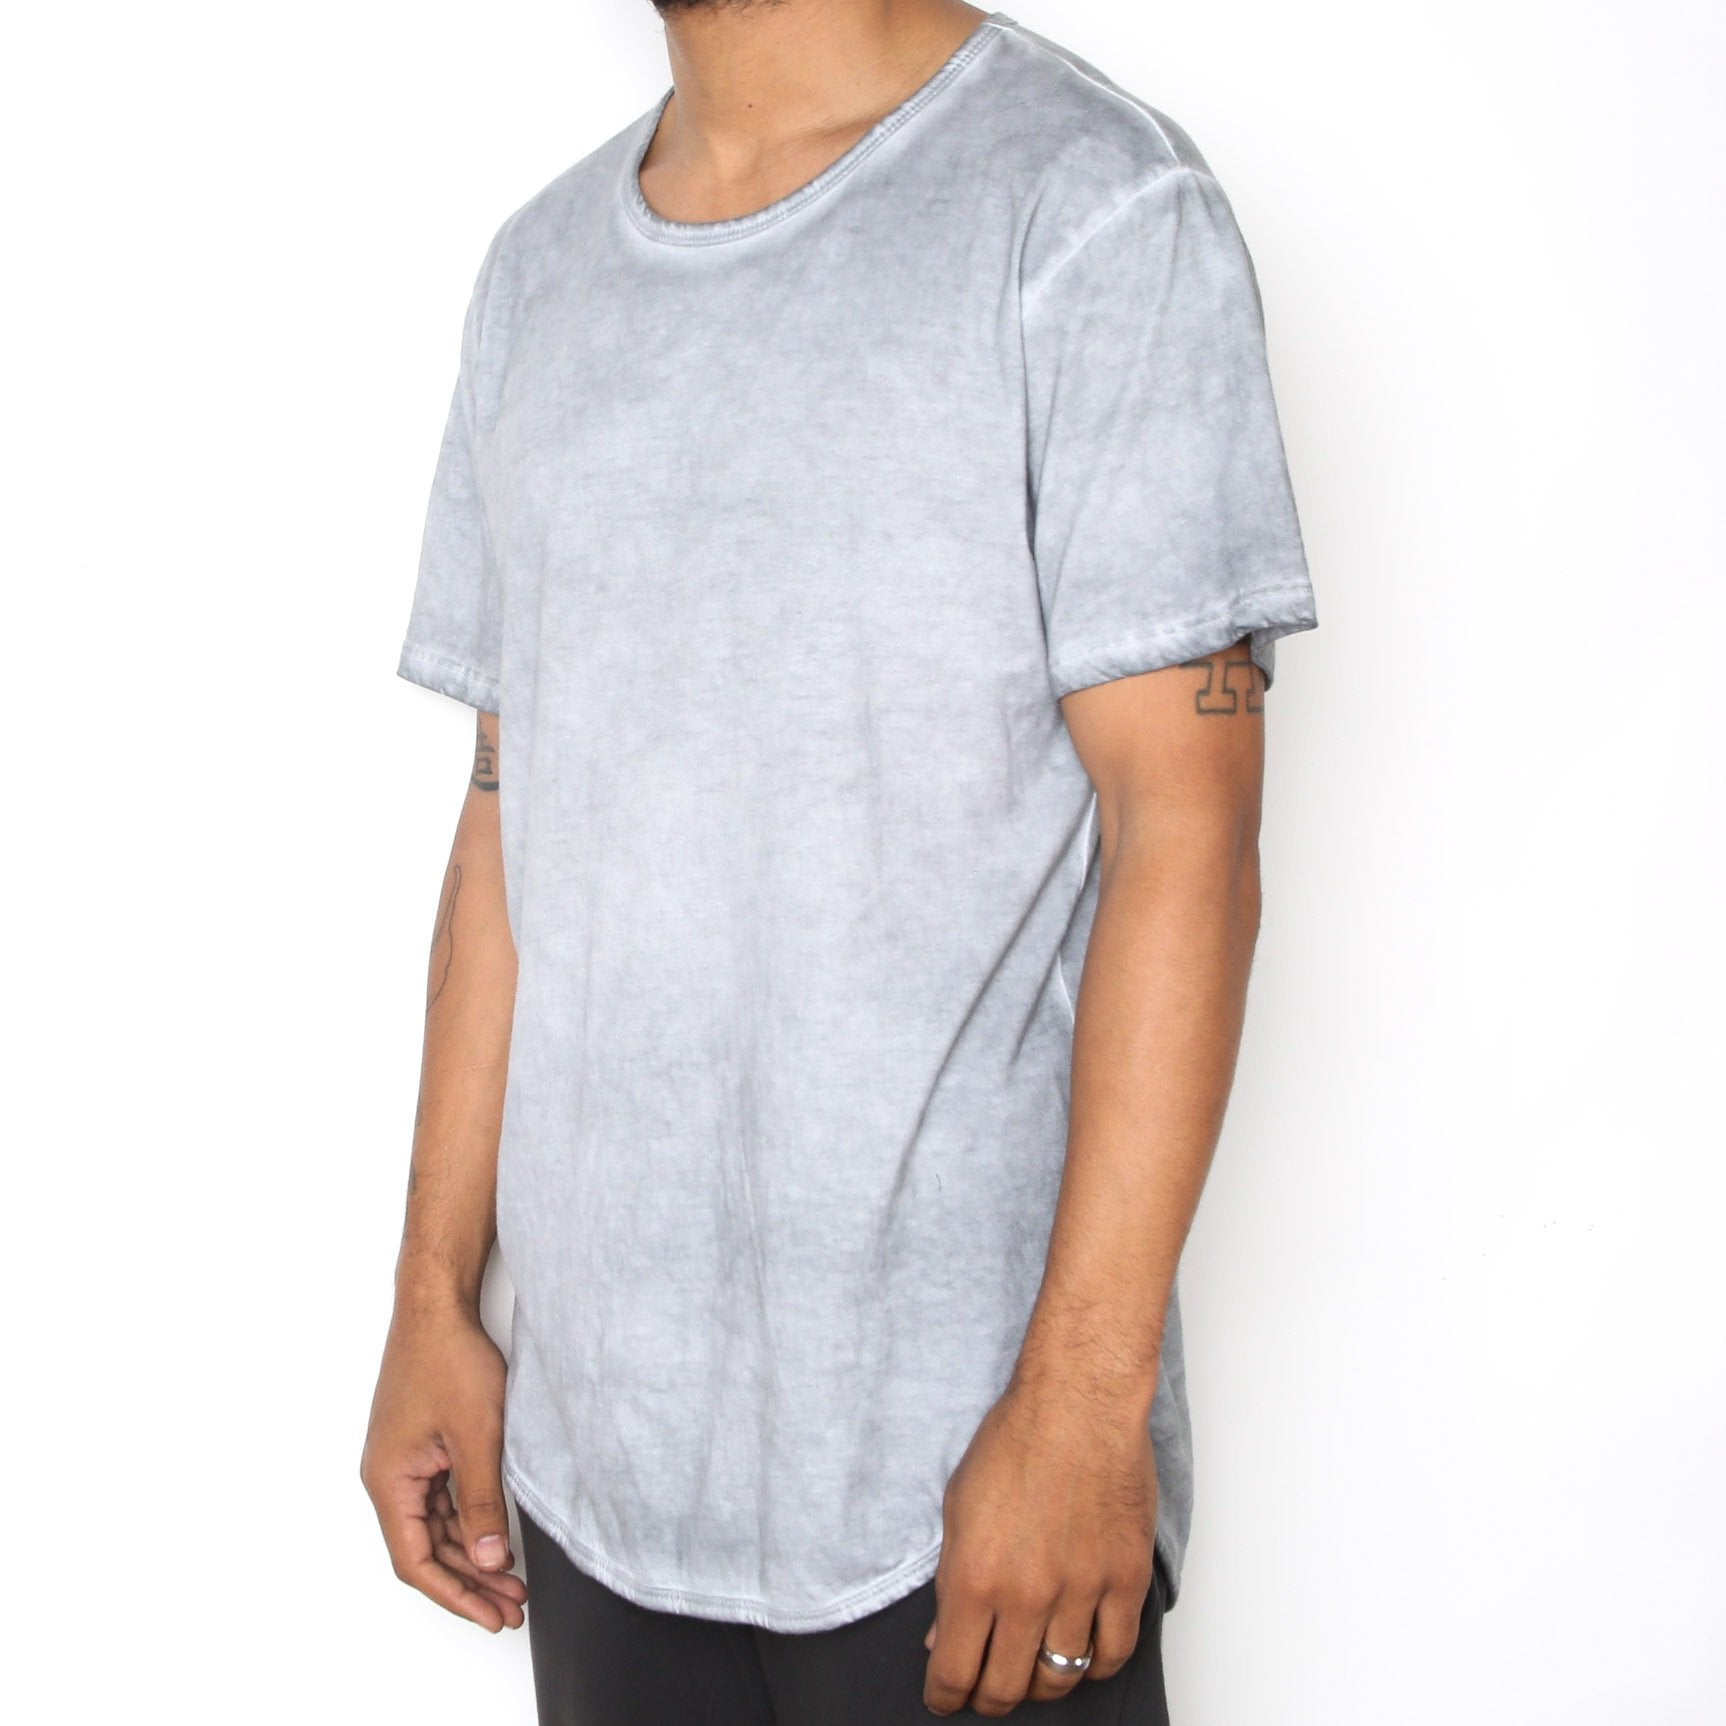 OIL WASH SCALLOP TEE- GREY - mroutfit